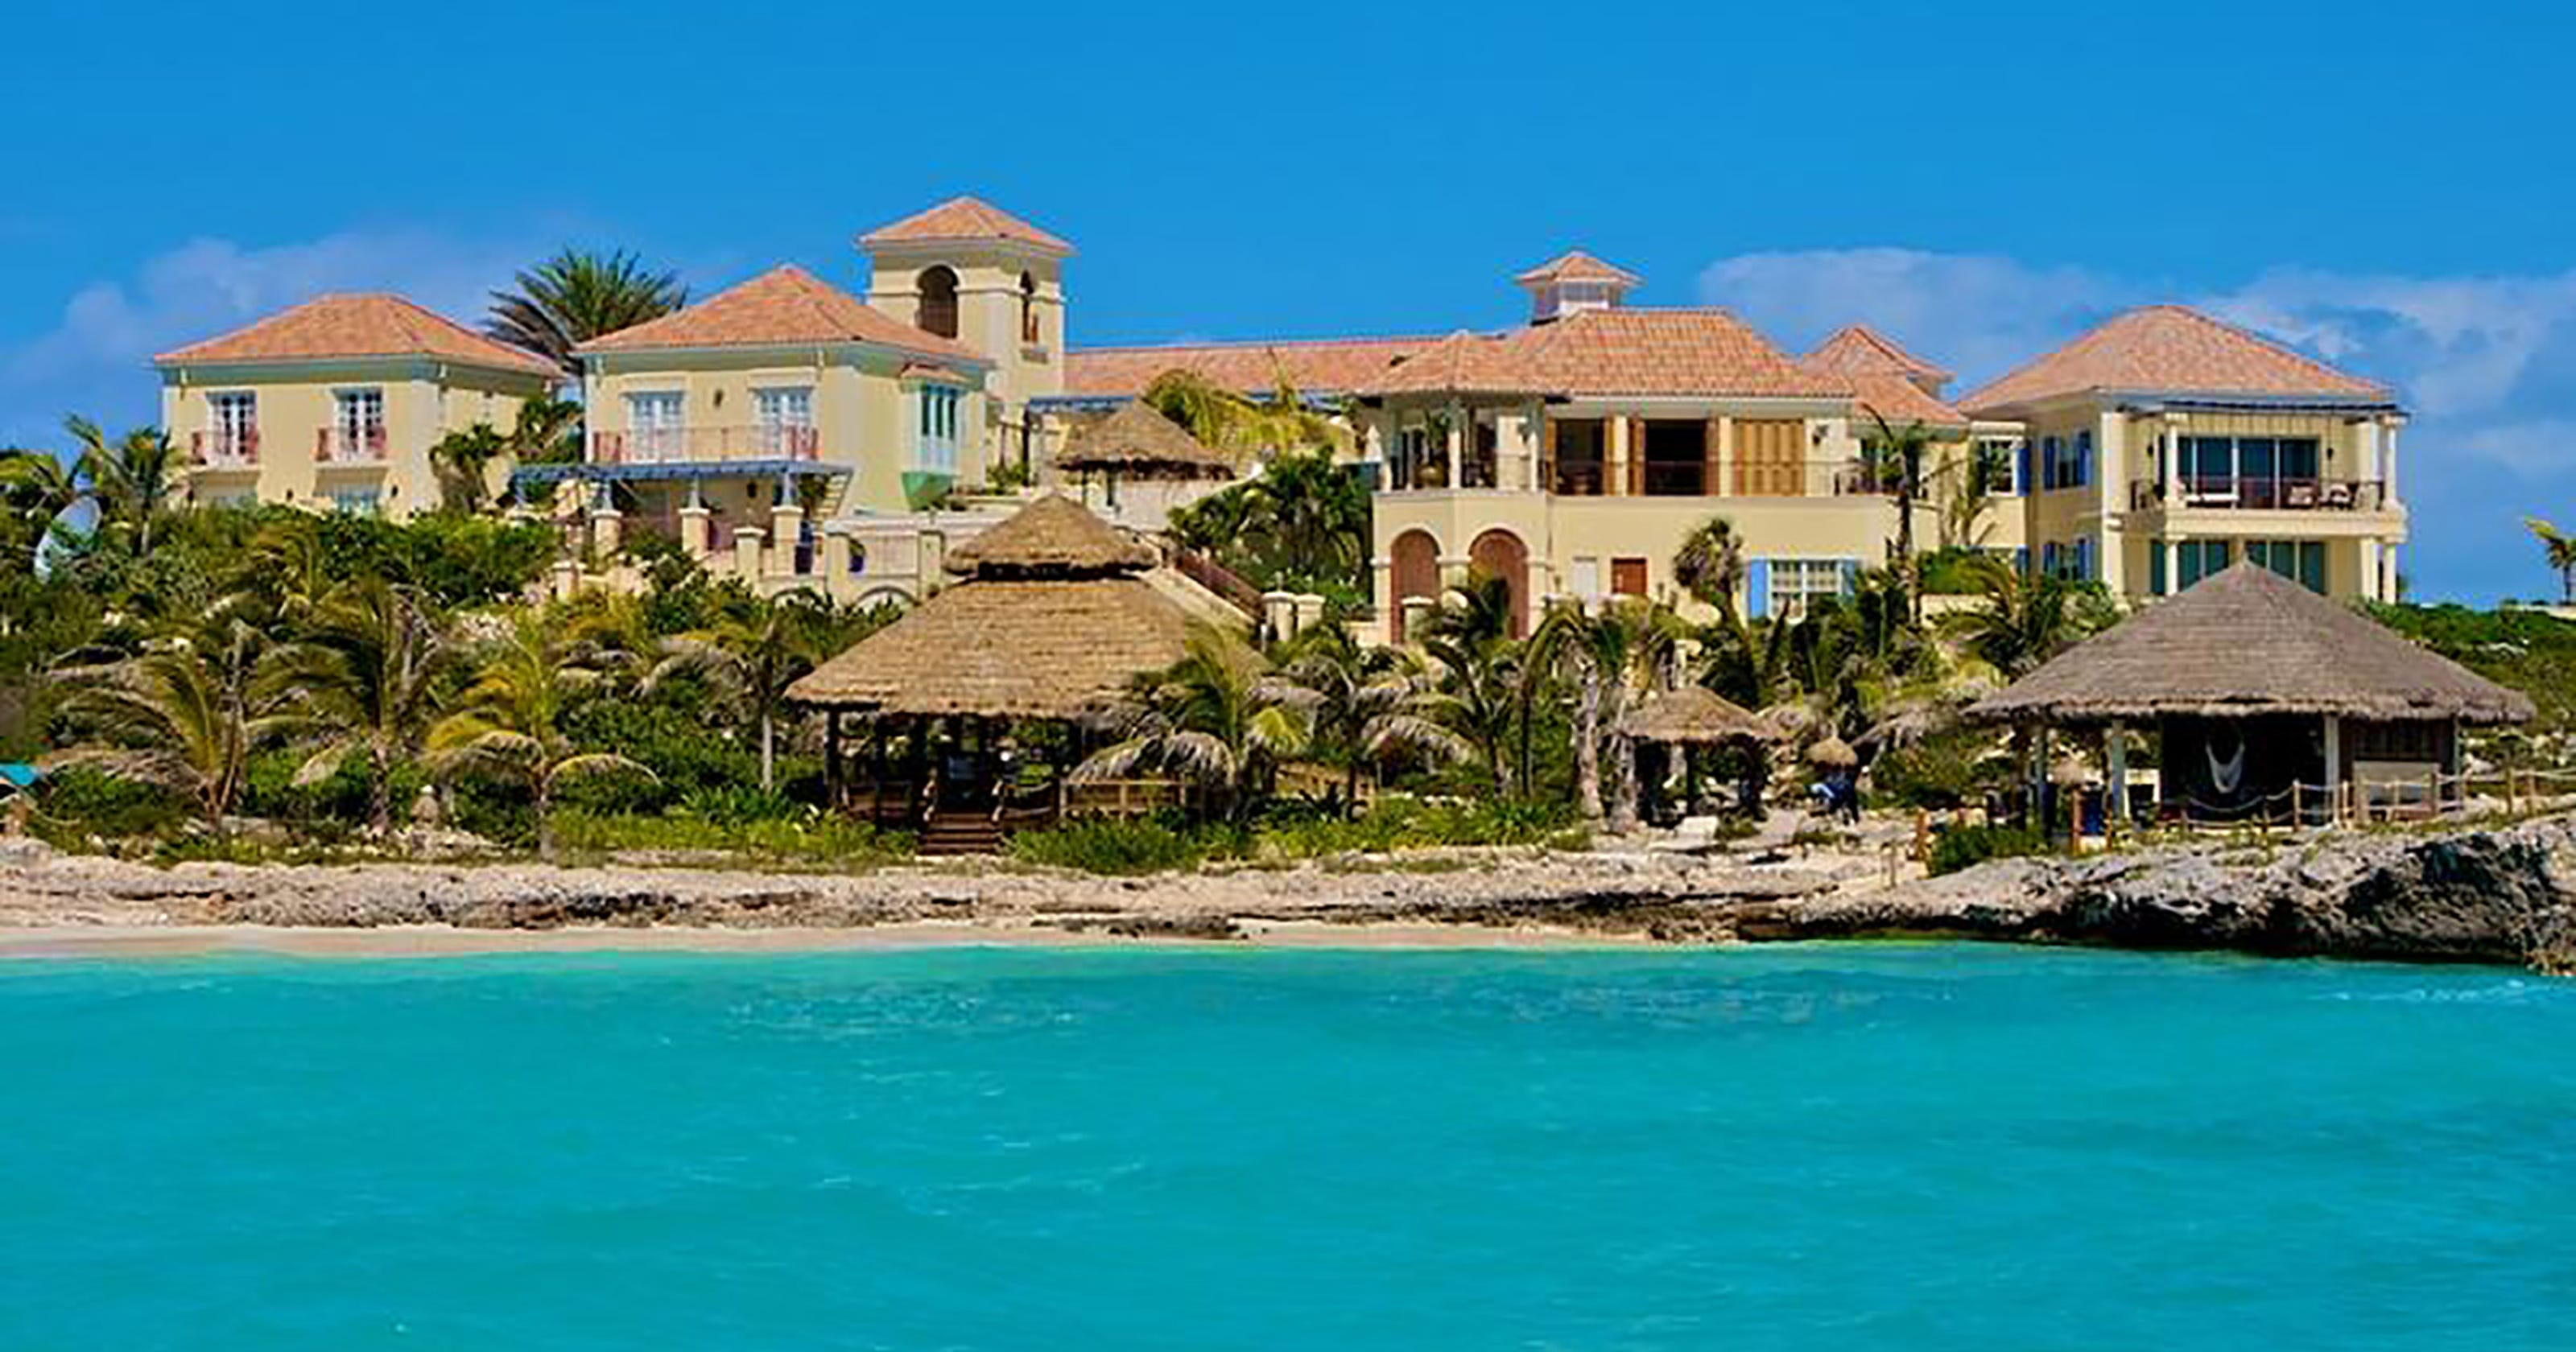 Prince\'s multi-million-dollar villa on Turks and Caicos to be sold